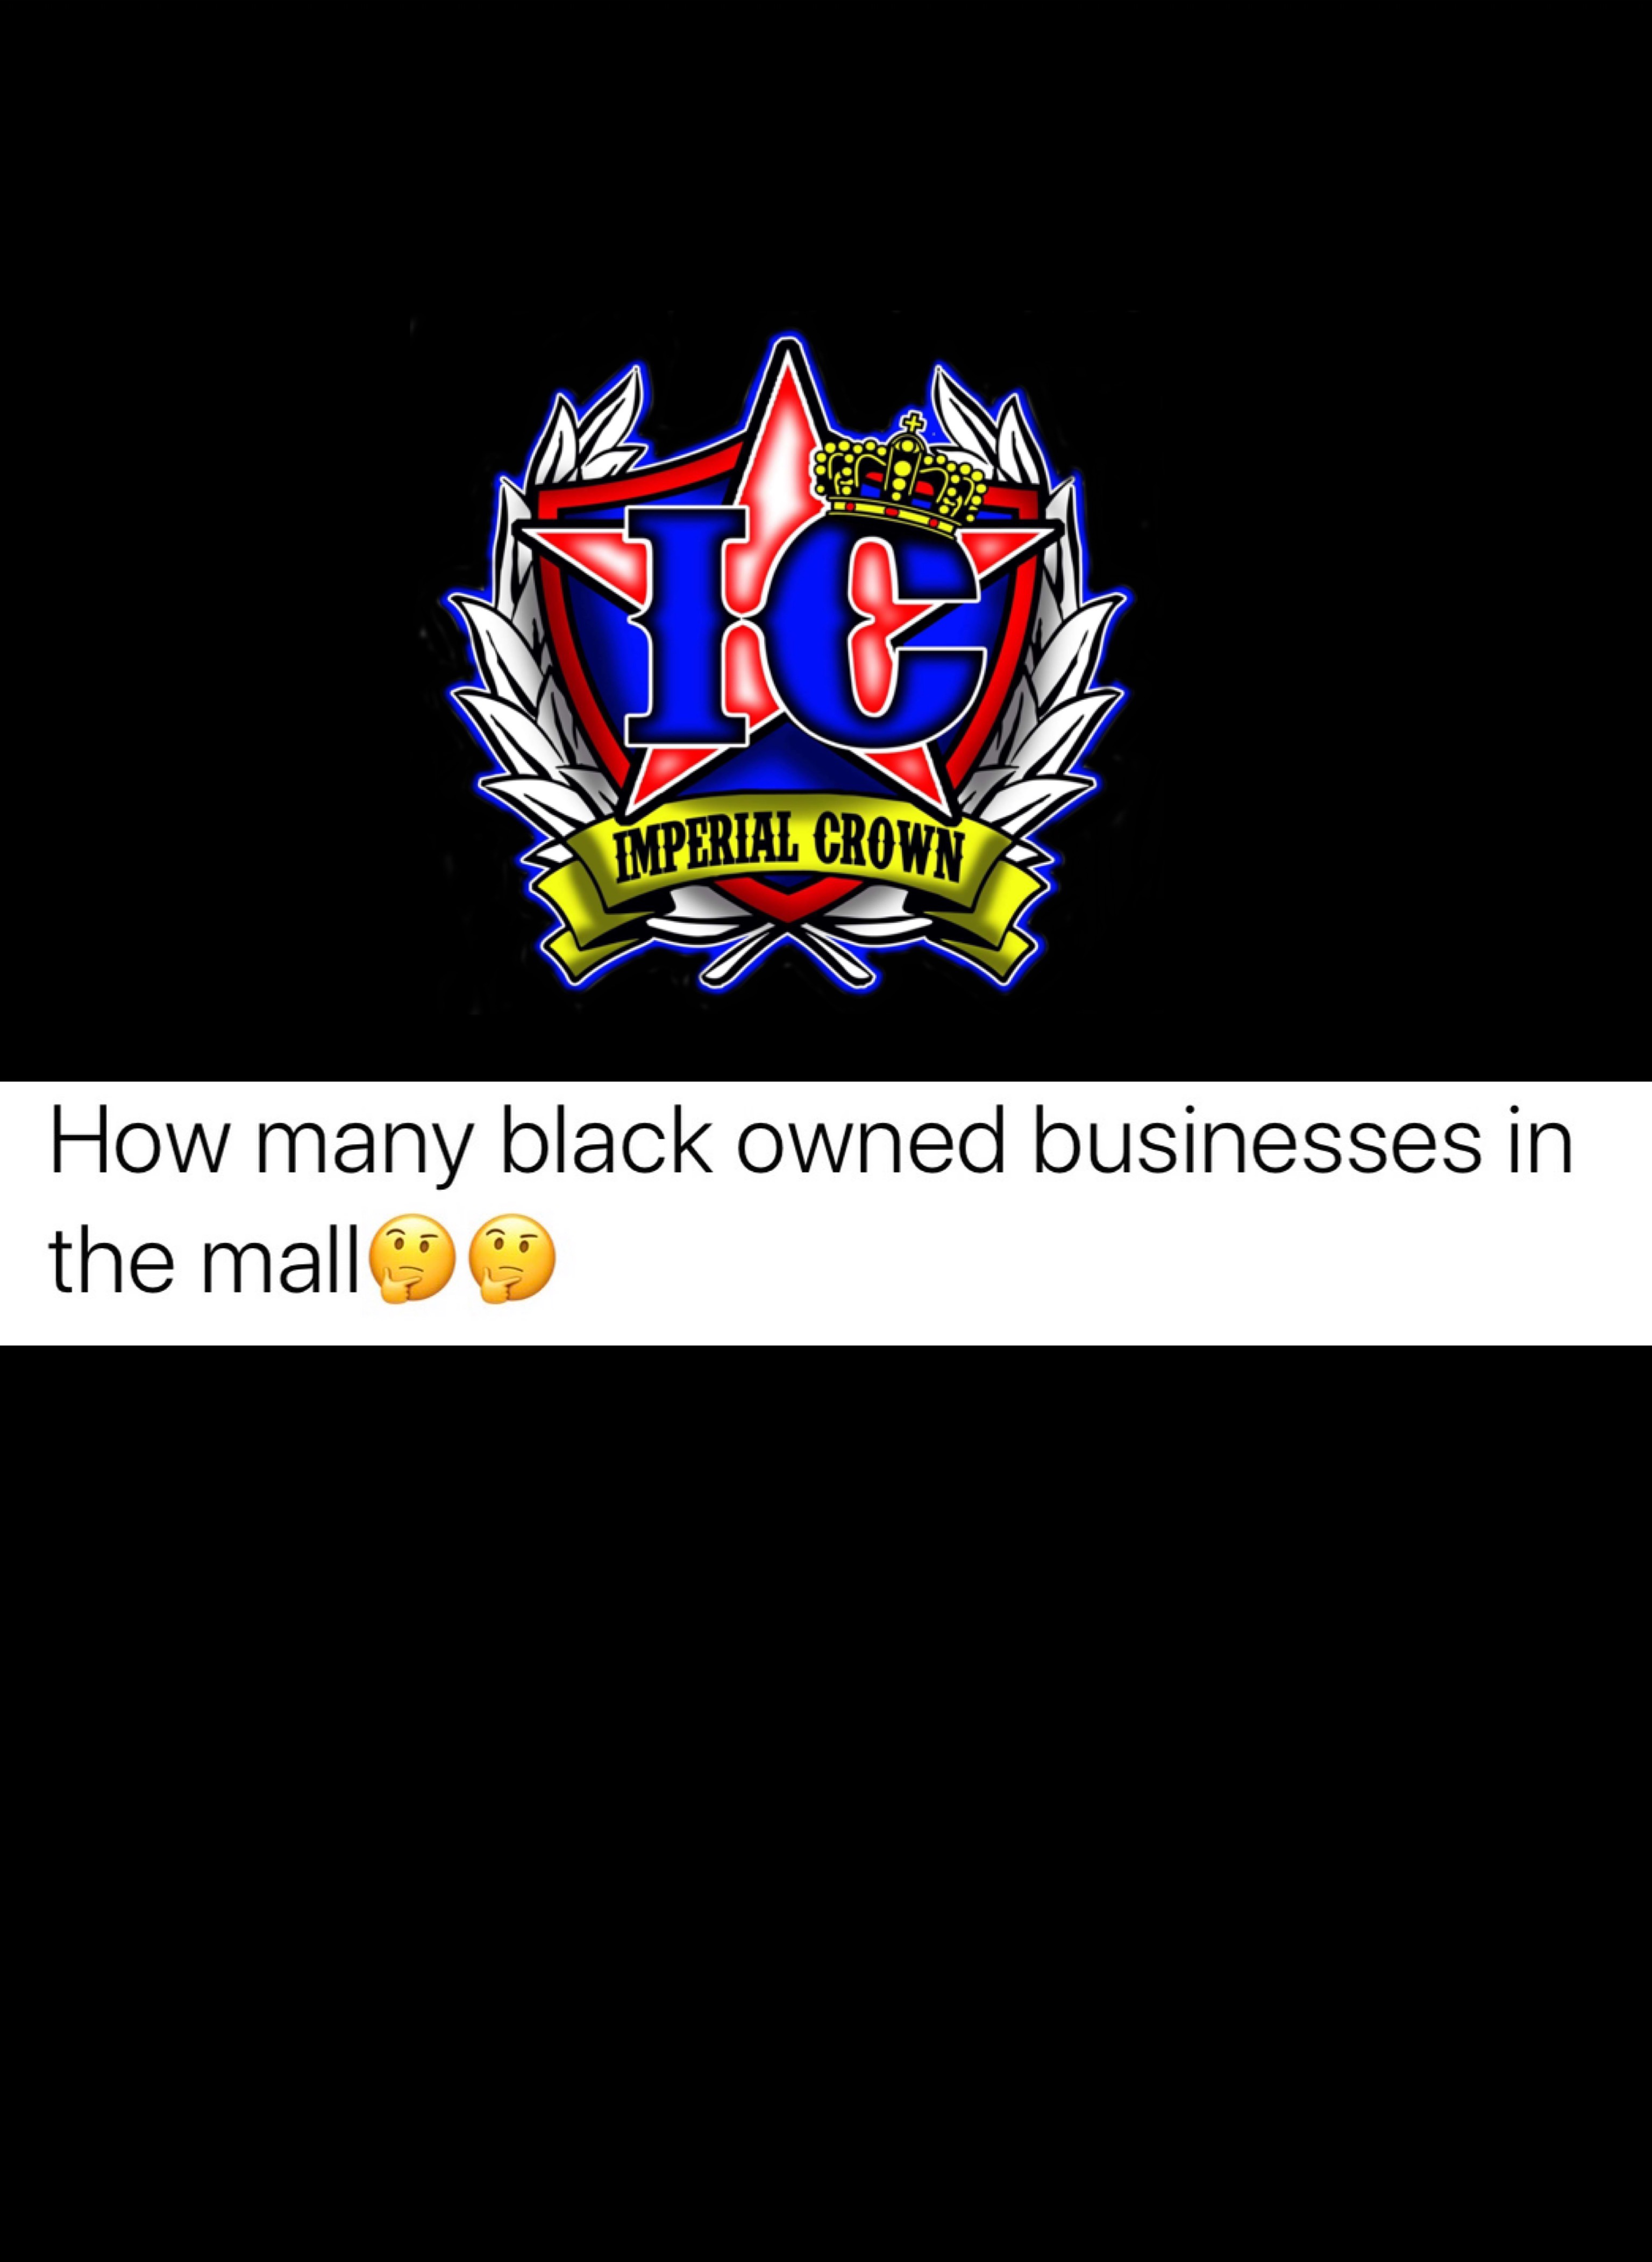 How many black owned businesses in the mall